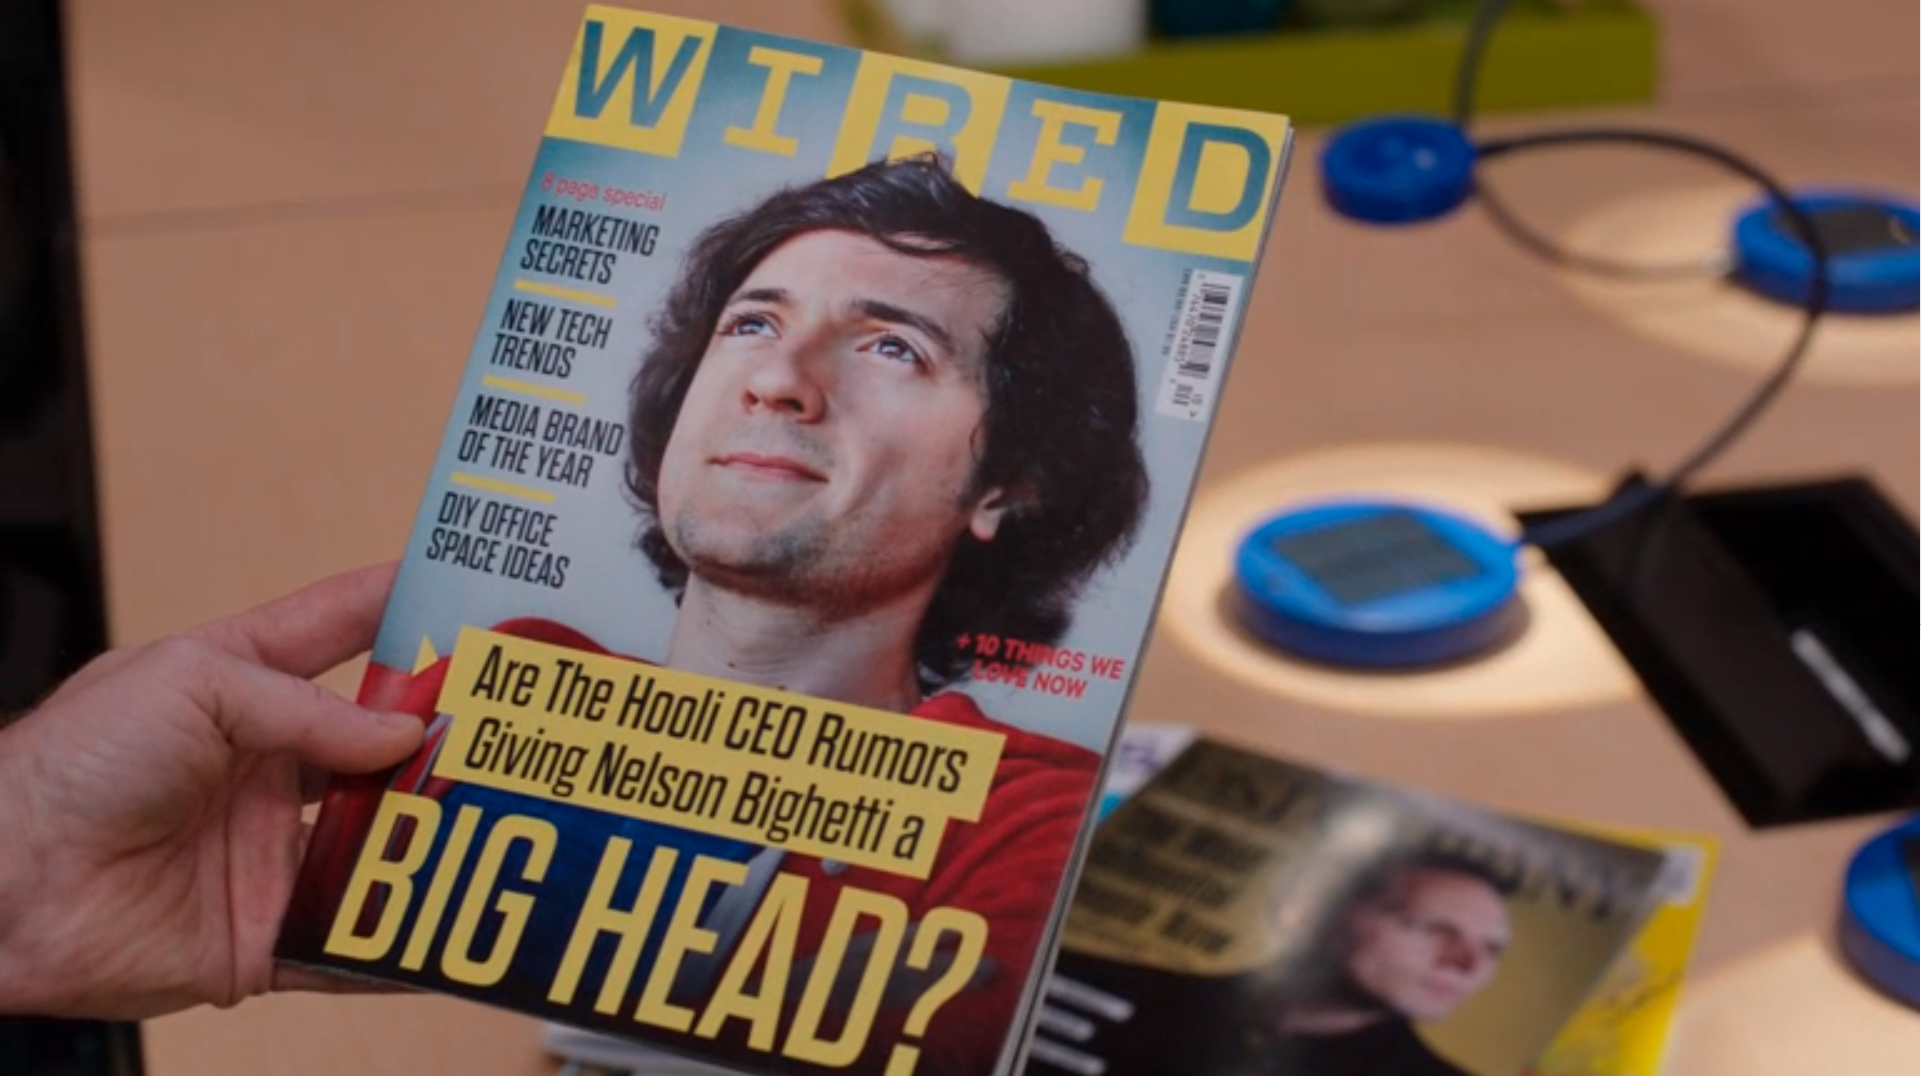 """Wired magazine featuring a fictional character """"Bighead"""" from the show Silicon Valley"""